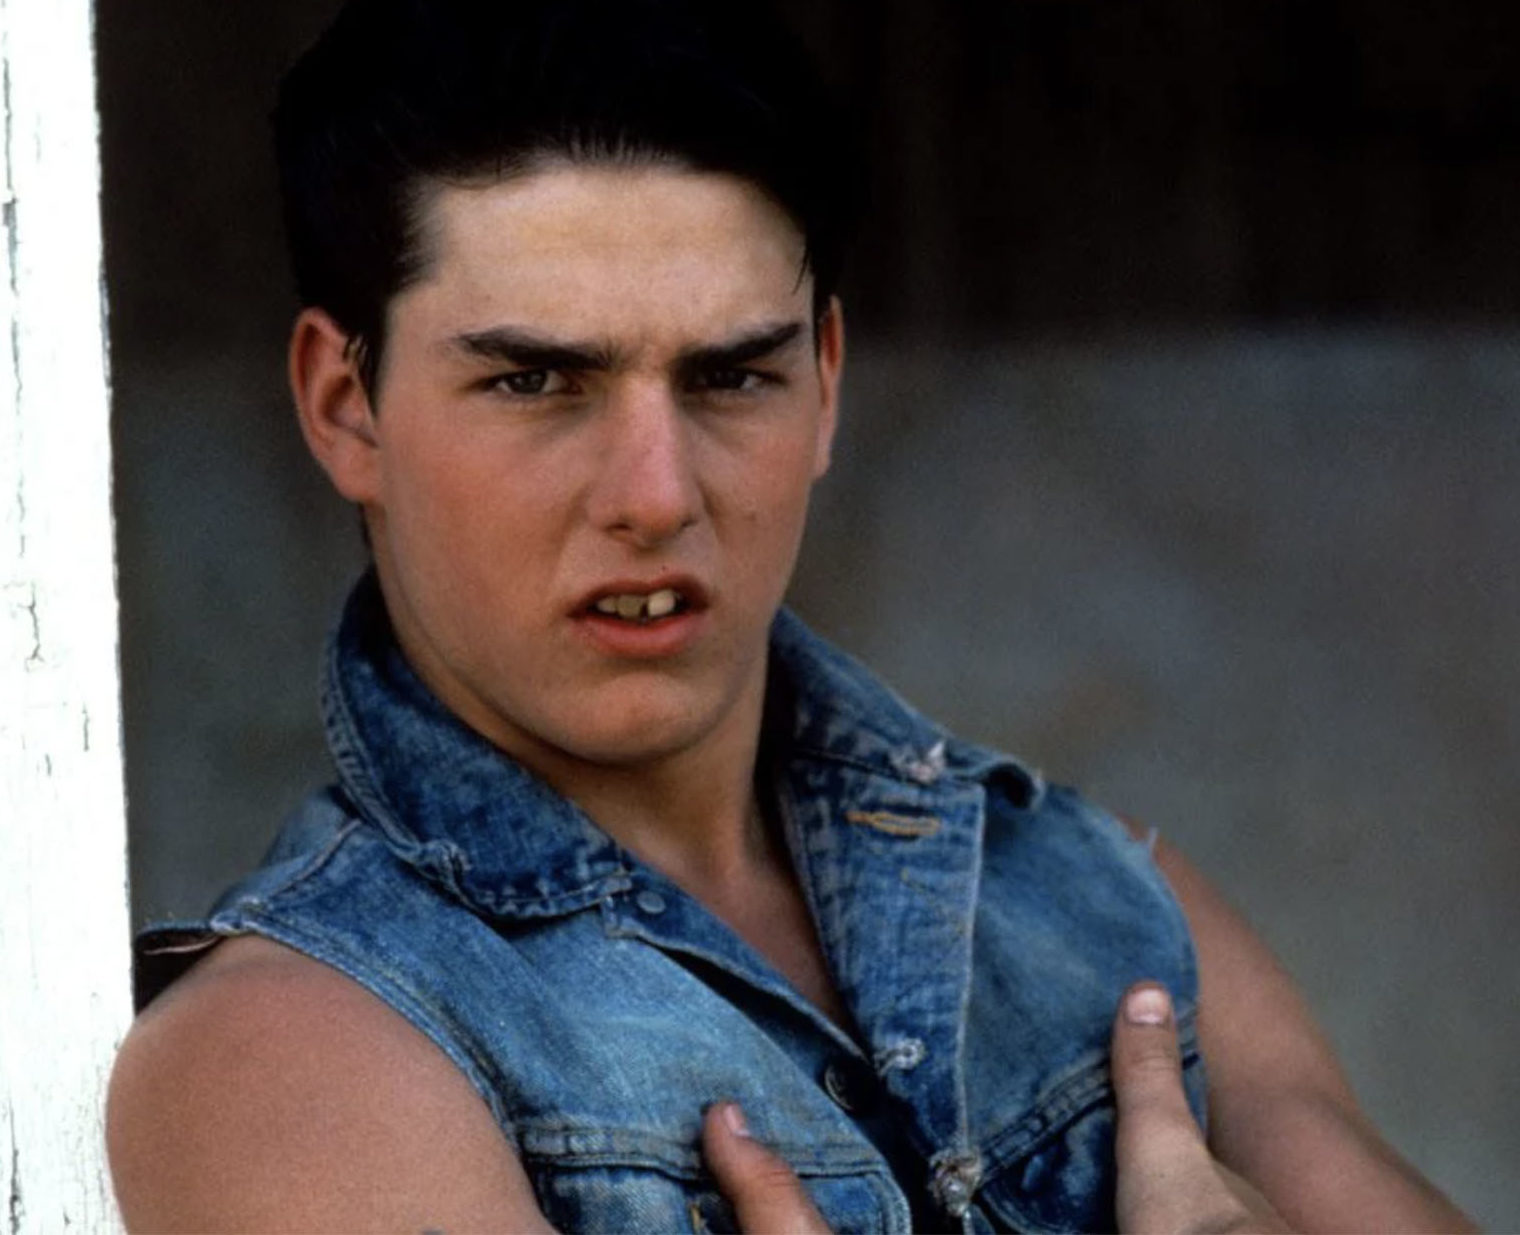 tom cruise e1610701531852 20 Things You Probably Didn't Know About The 1983 Film The Outsiders